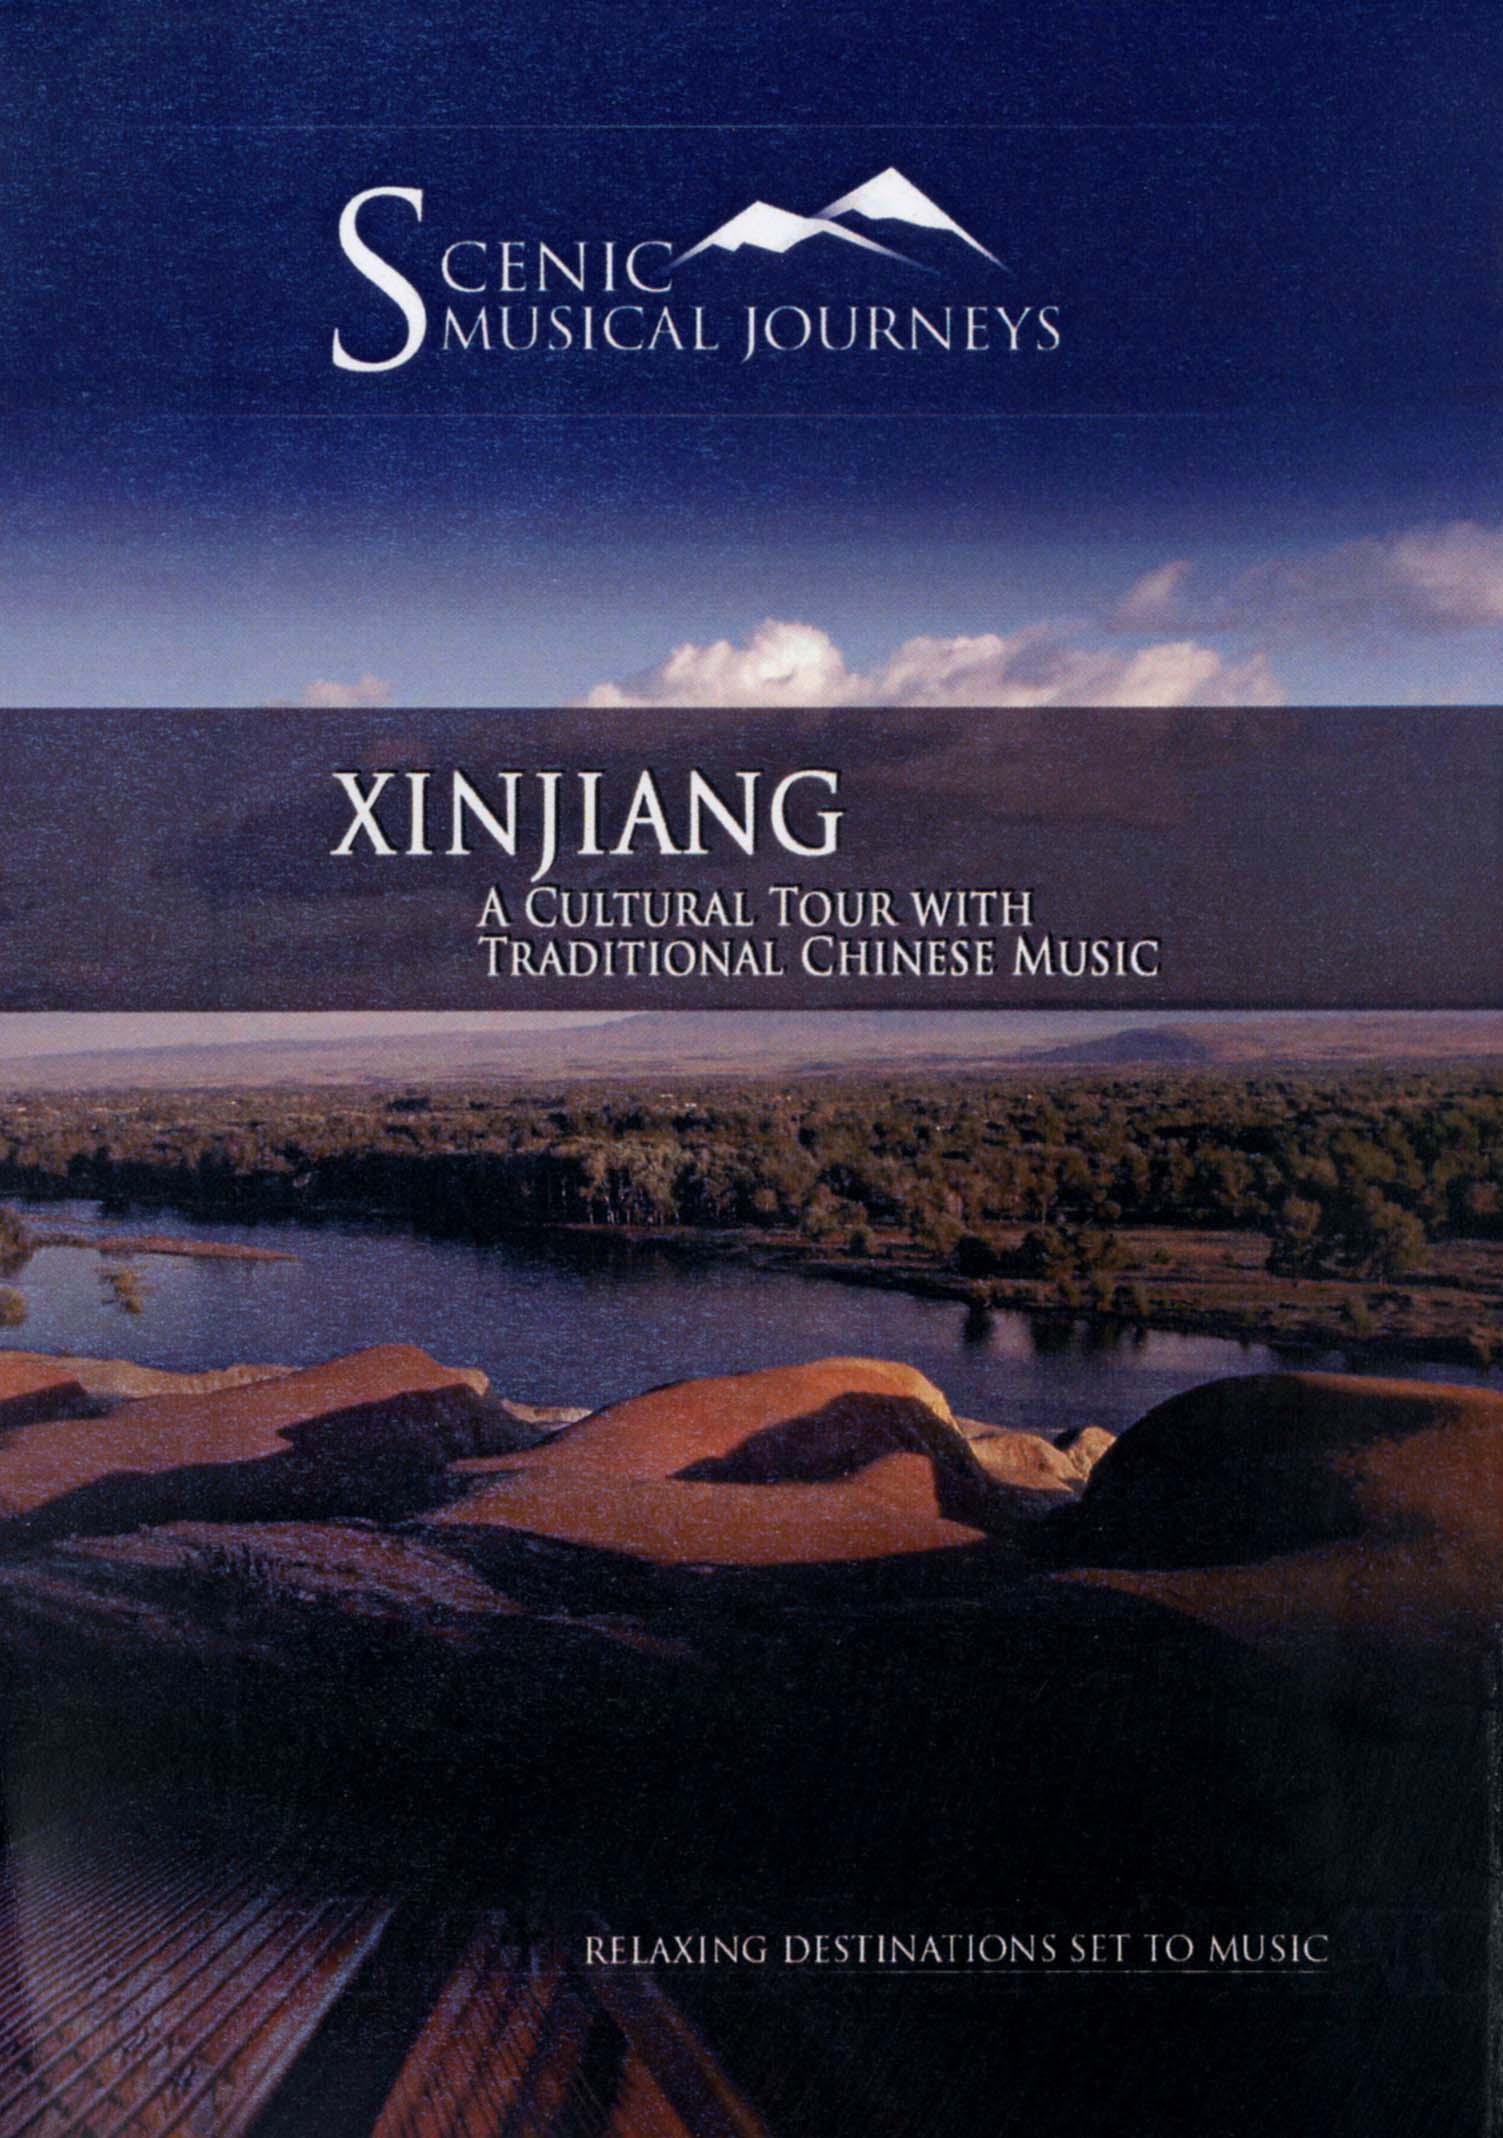 Scenic Musical Journeys: Xinjiang - A Cultural Tour With Traditional Chinese Music